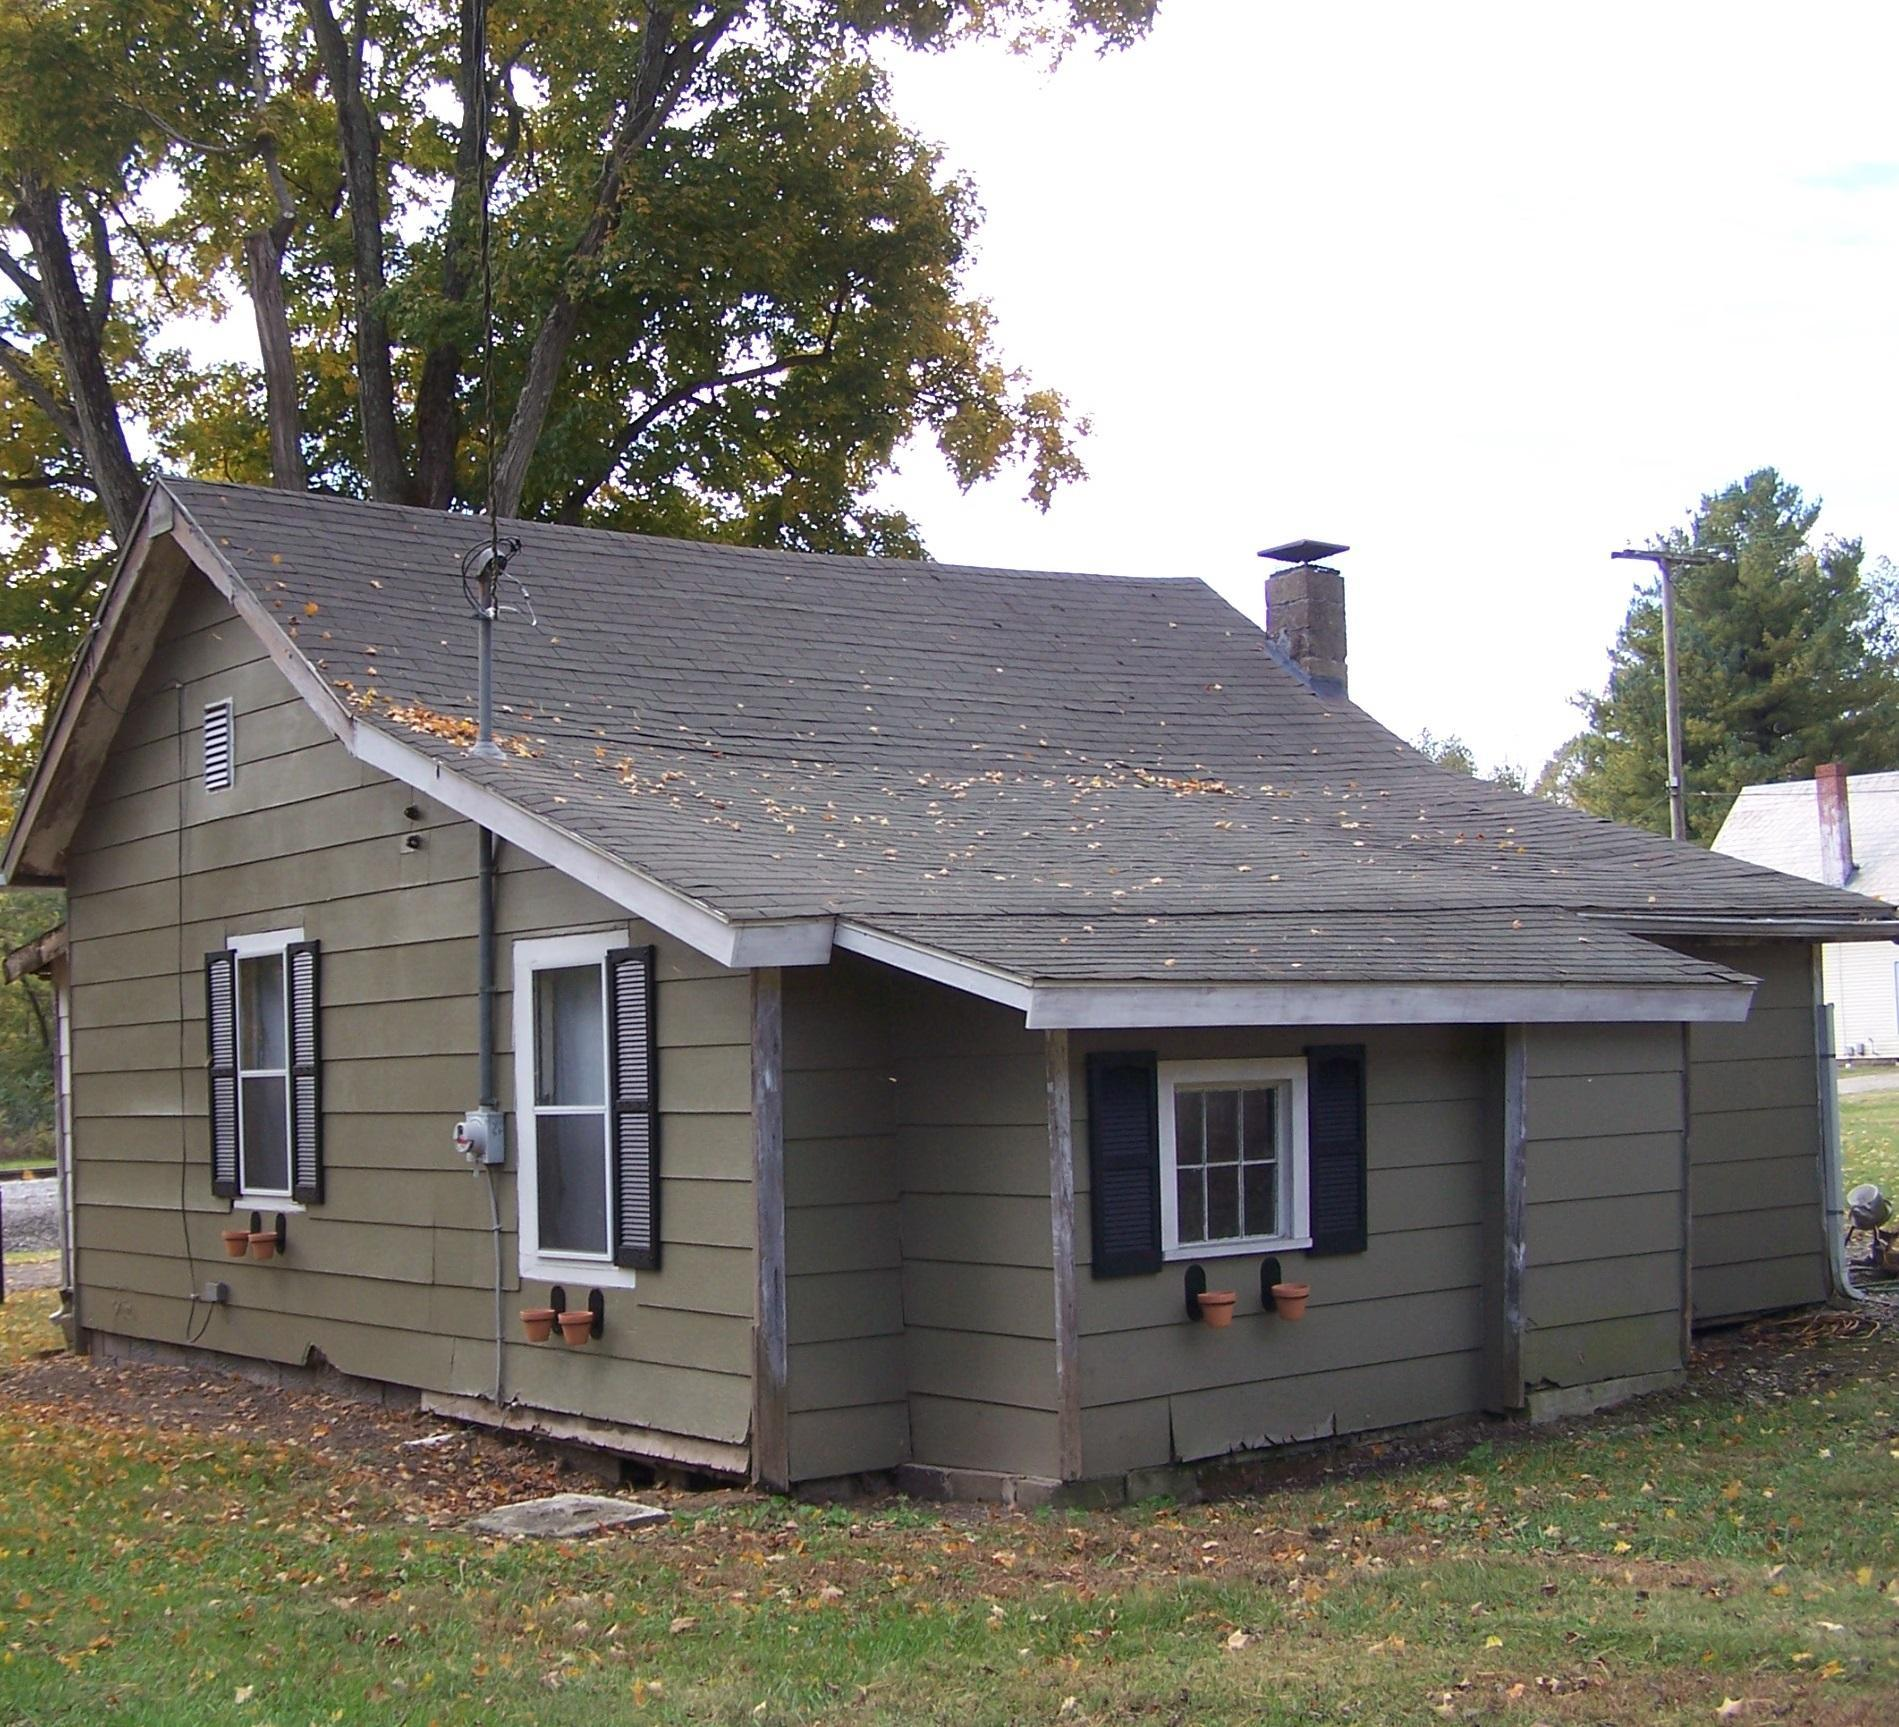 1291 Union Station Road, Granville, Ohio 43023, 2 Bedrooms Bedrooms, ,1 BathroomBathrooms,Residential,For Sale,Union Station,219021668